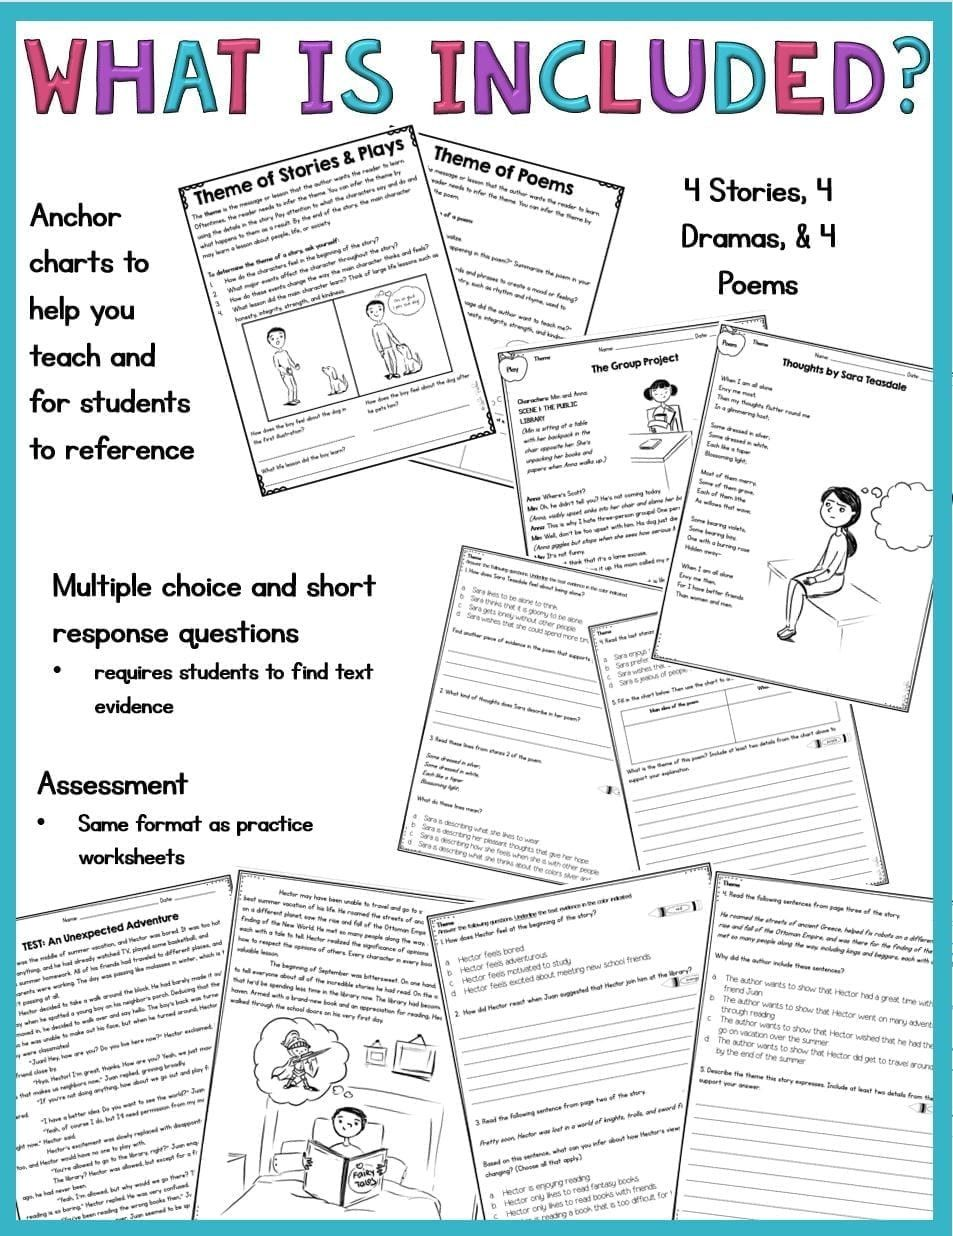 5th Grade Theme Worksheets Theme In Stories Plays And Poems 4th Grade Rl 4 2 And 5th Grade Rl 5 2 In 2020 Poetry Worksheets Text Features Worksheet Text Evidence